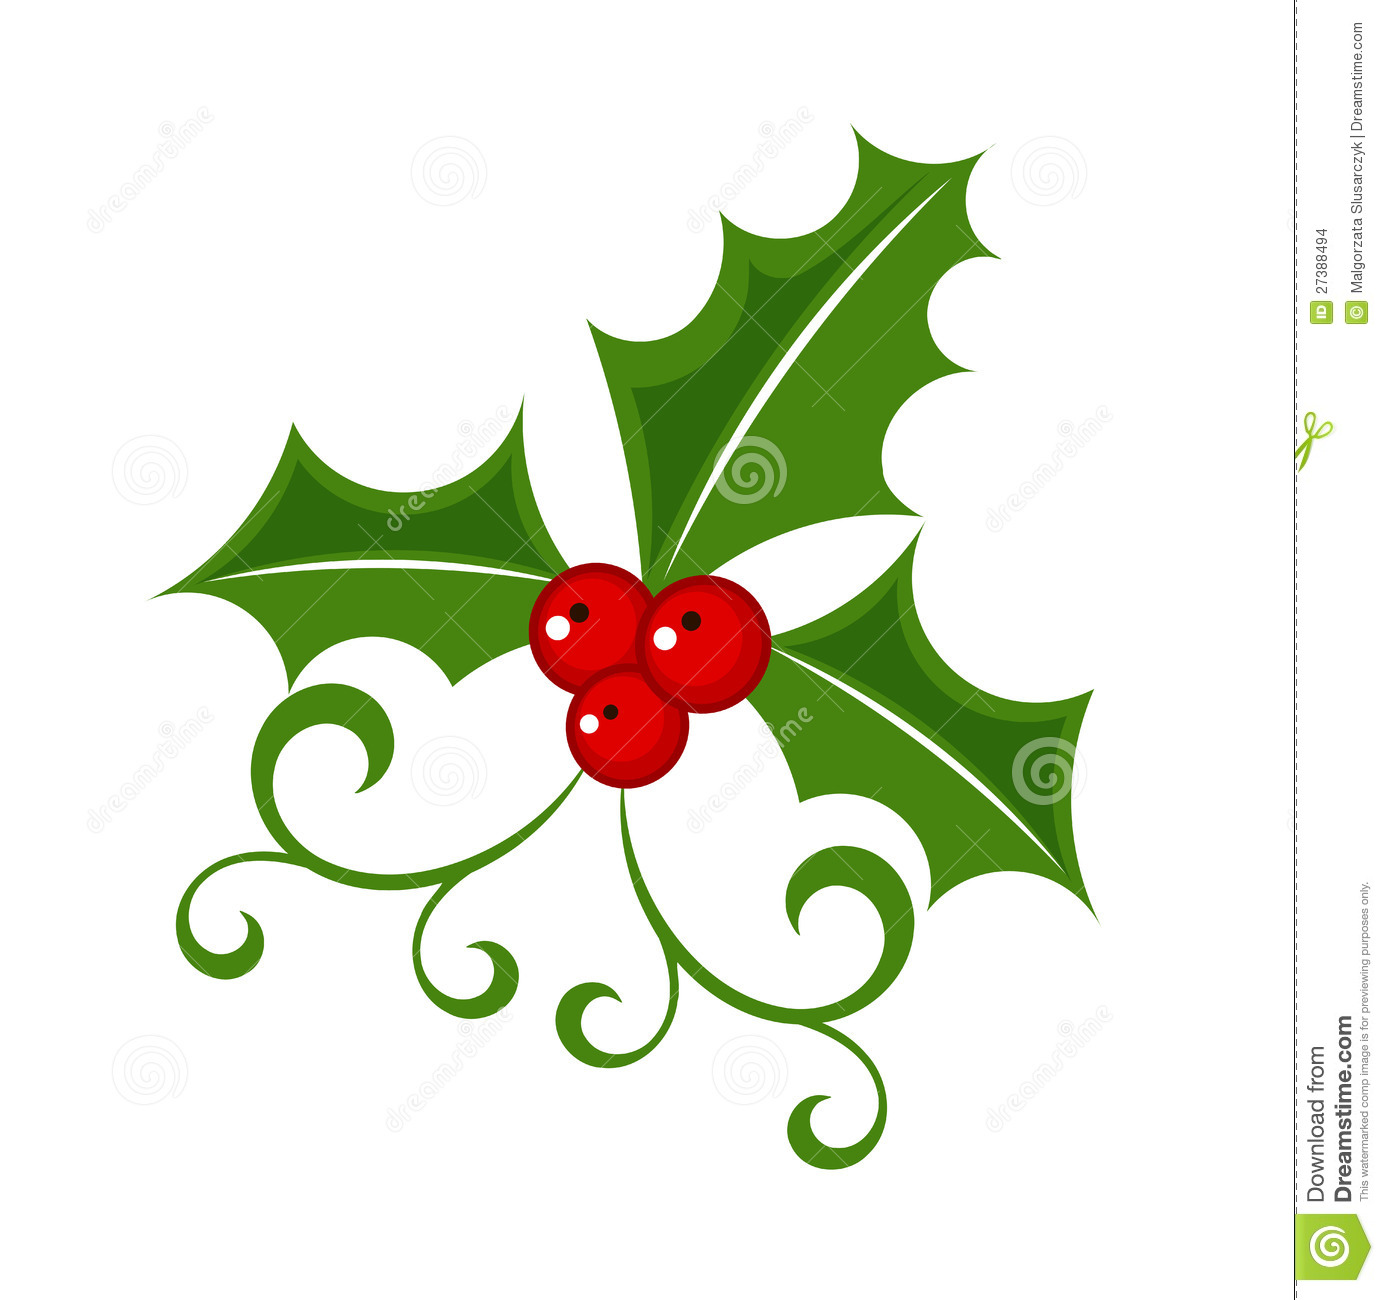 Holly Berry Illustration Stock Images - Image: 27388494